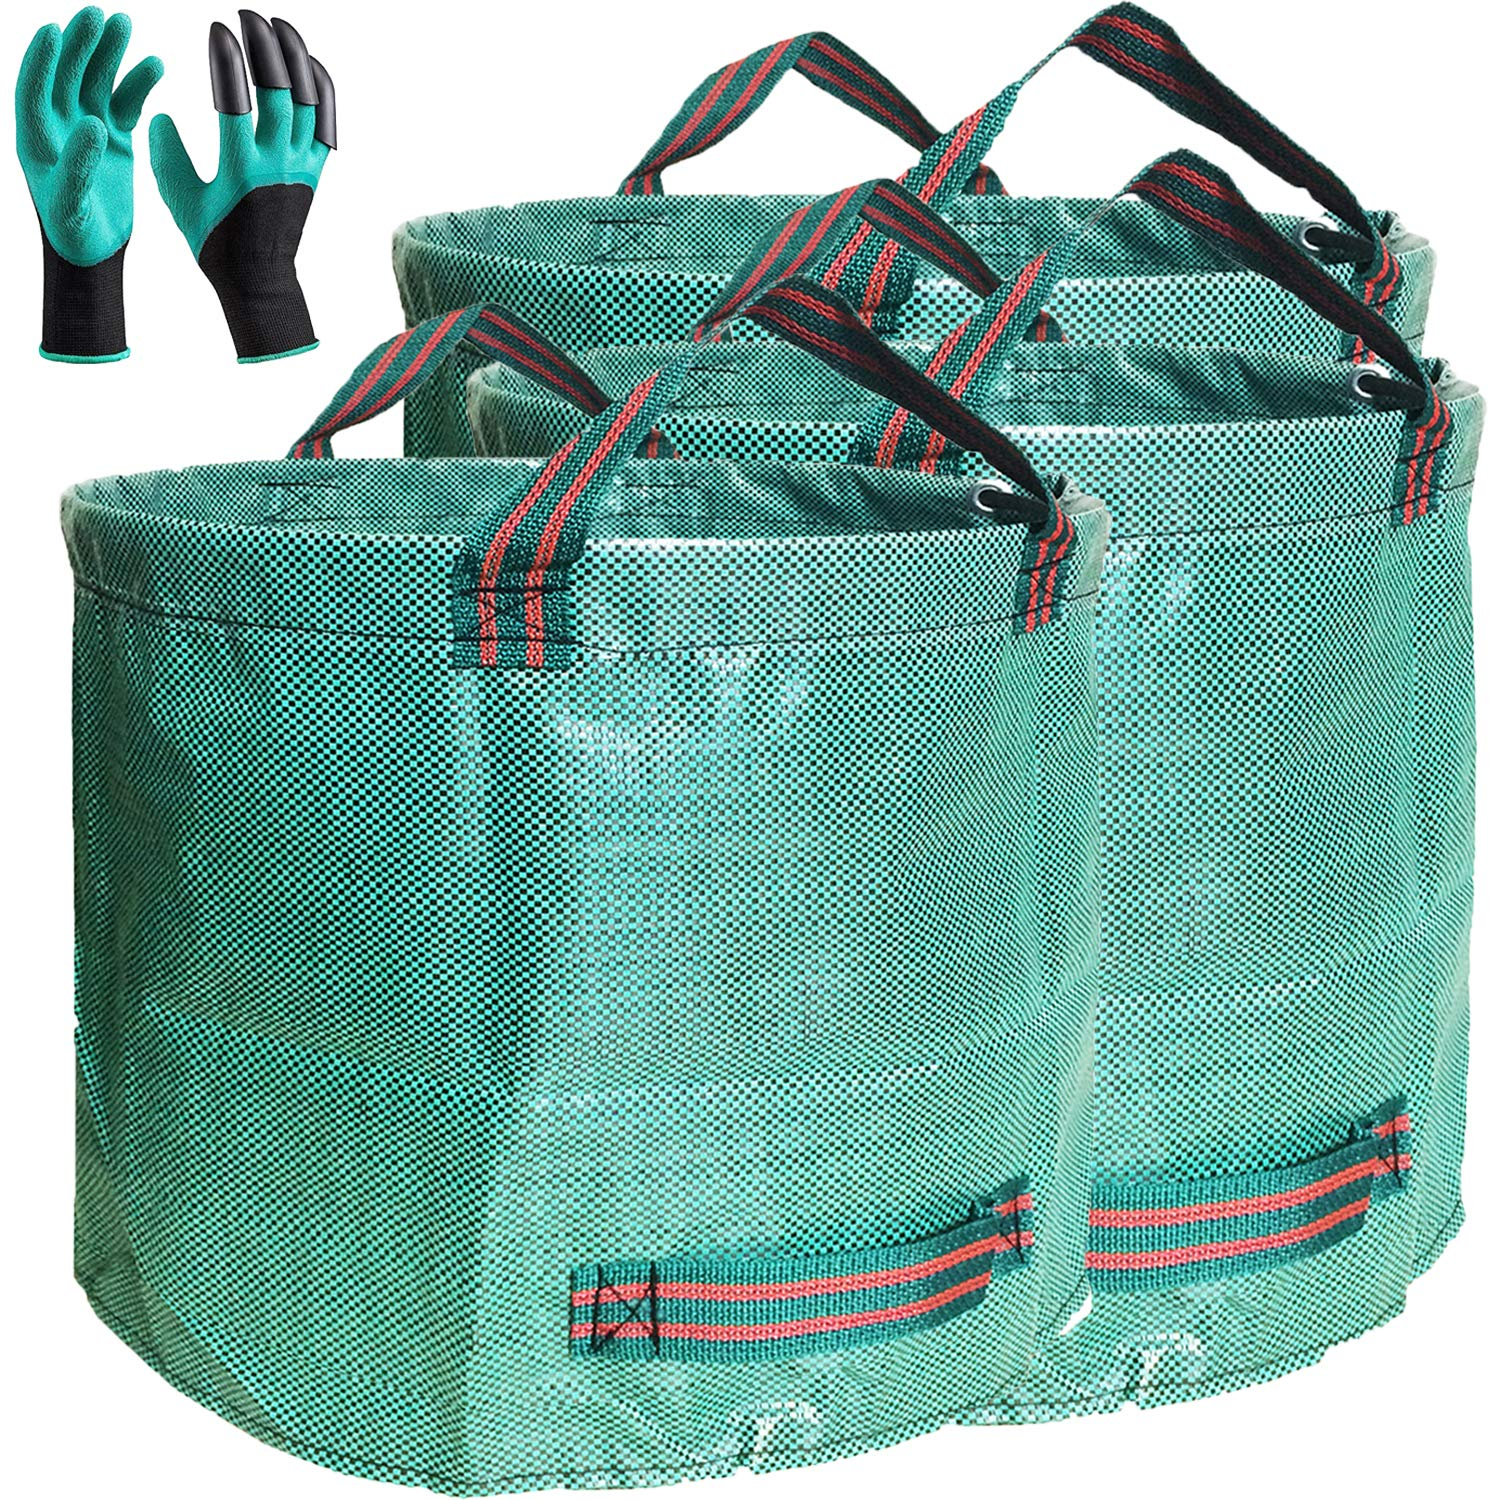 Professional 3-Pack 106 Gallons Garden Yard Bags with Coated Gardening Gloves - XXXXX Large Reusable Leaf Bags Gardening Grow Bag Containers,Reuseable Lawn and Yard Waste Bags Can - 4 Handles